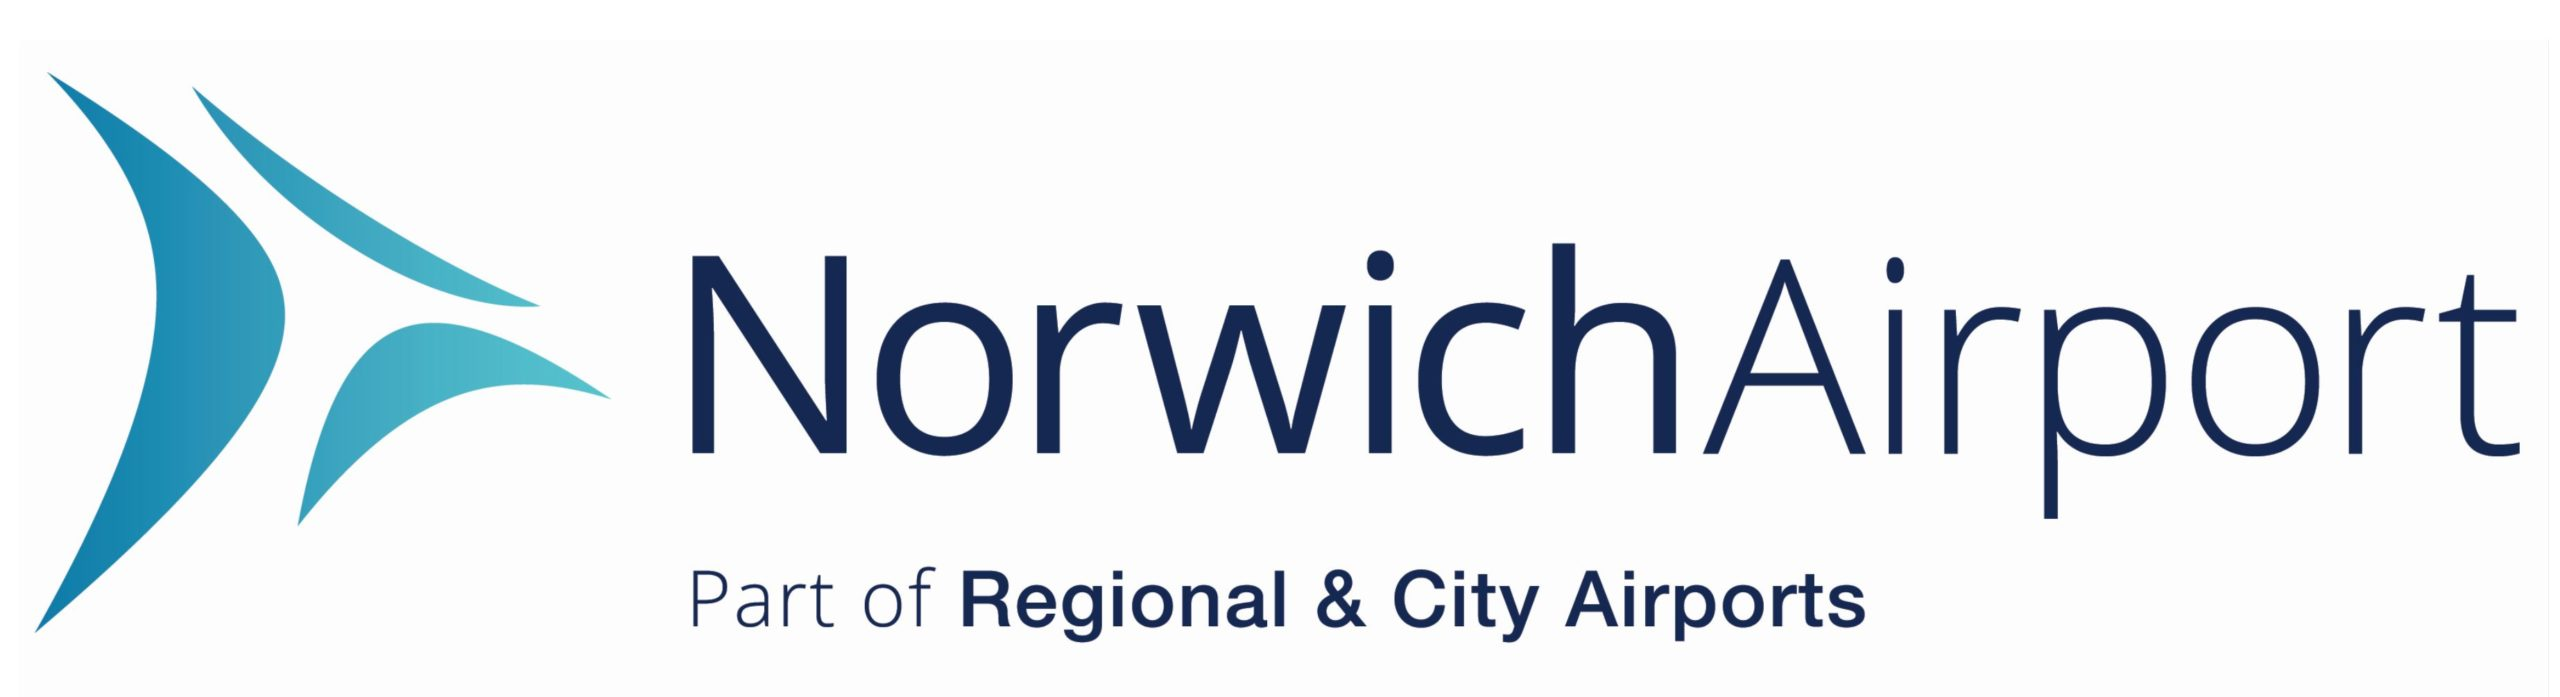 Norwich Airport Ltd